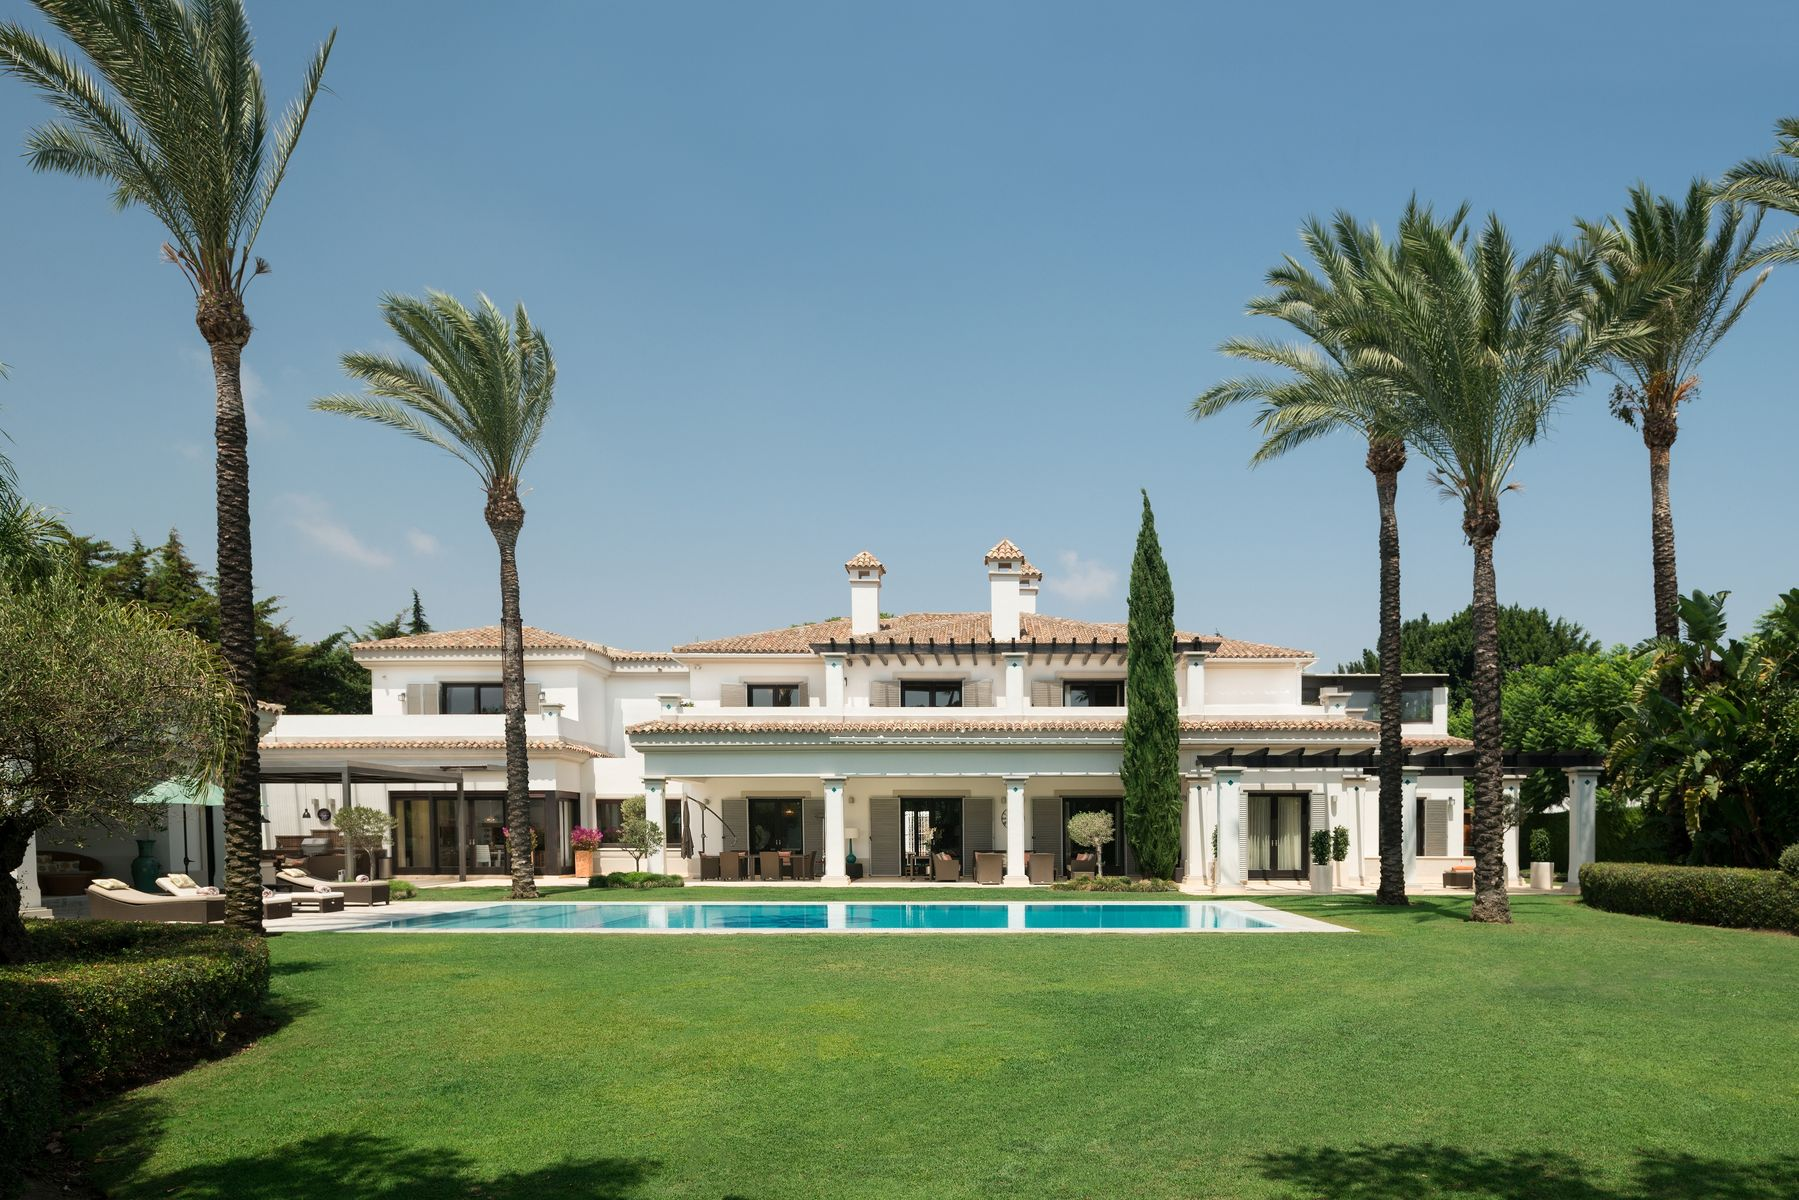 Bedøvelse villa i Kings & Queens-området i Sotogrande Costa